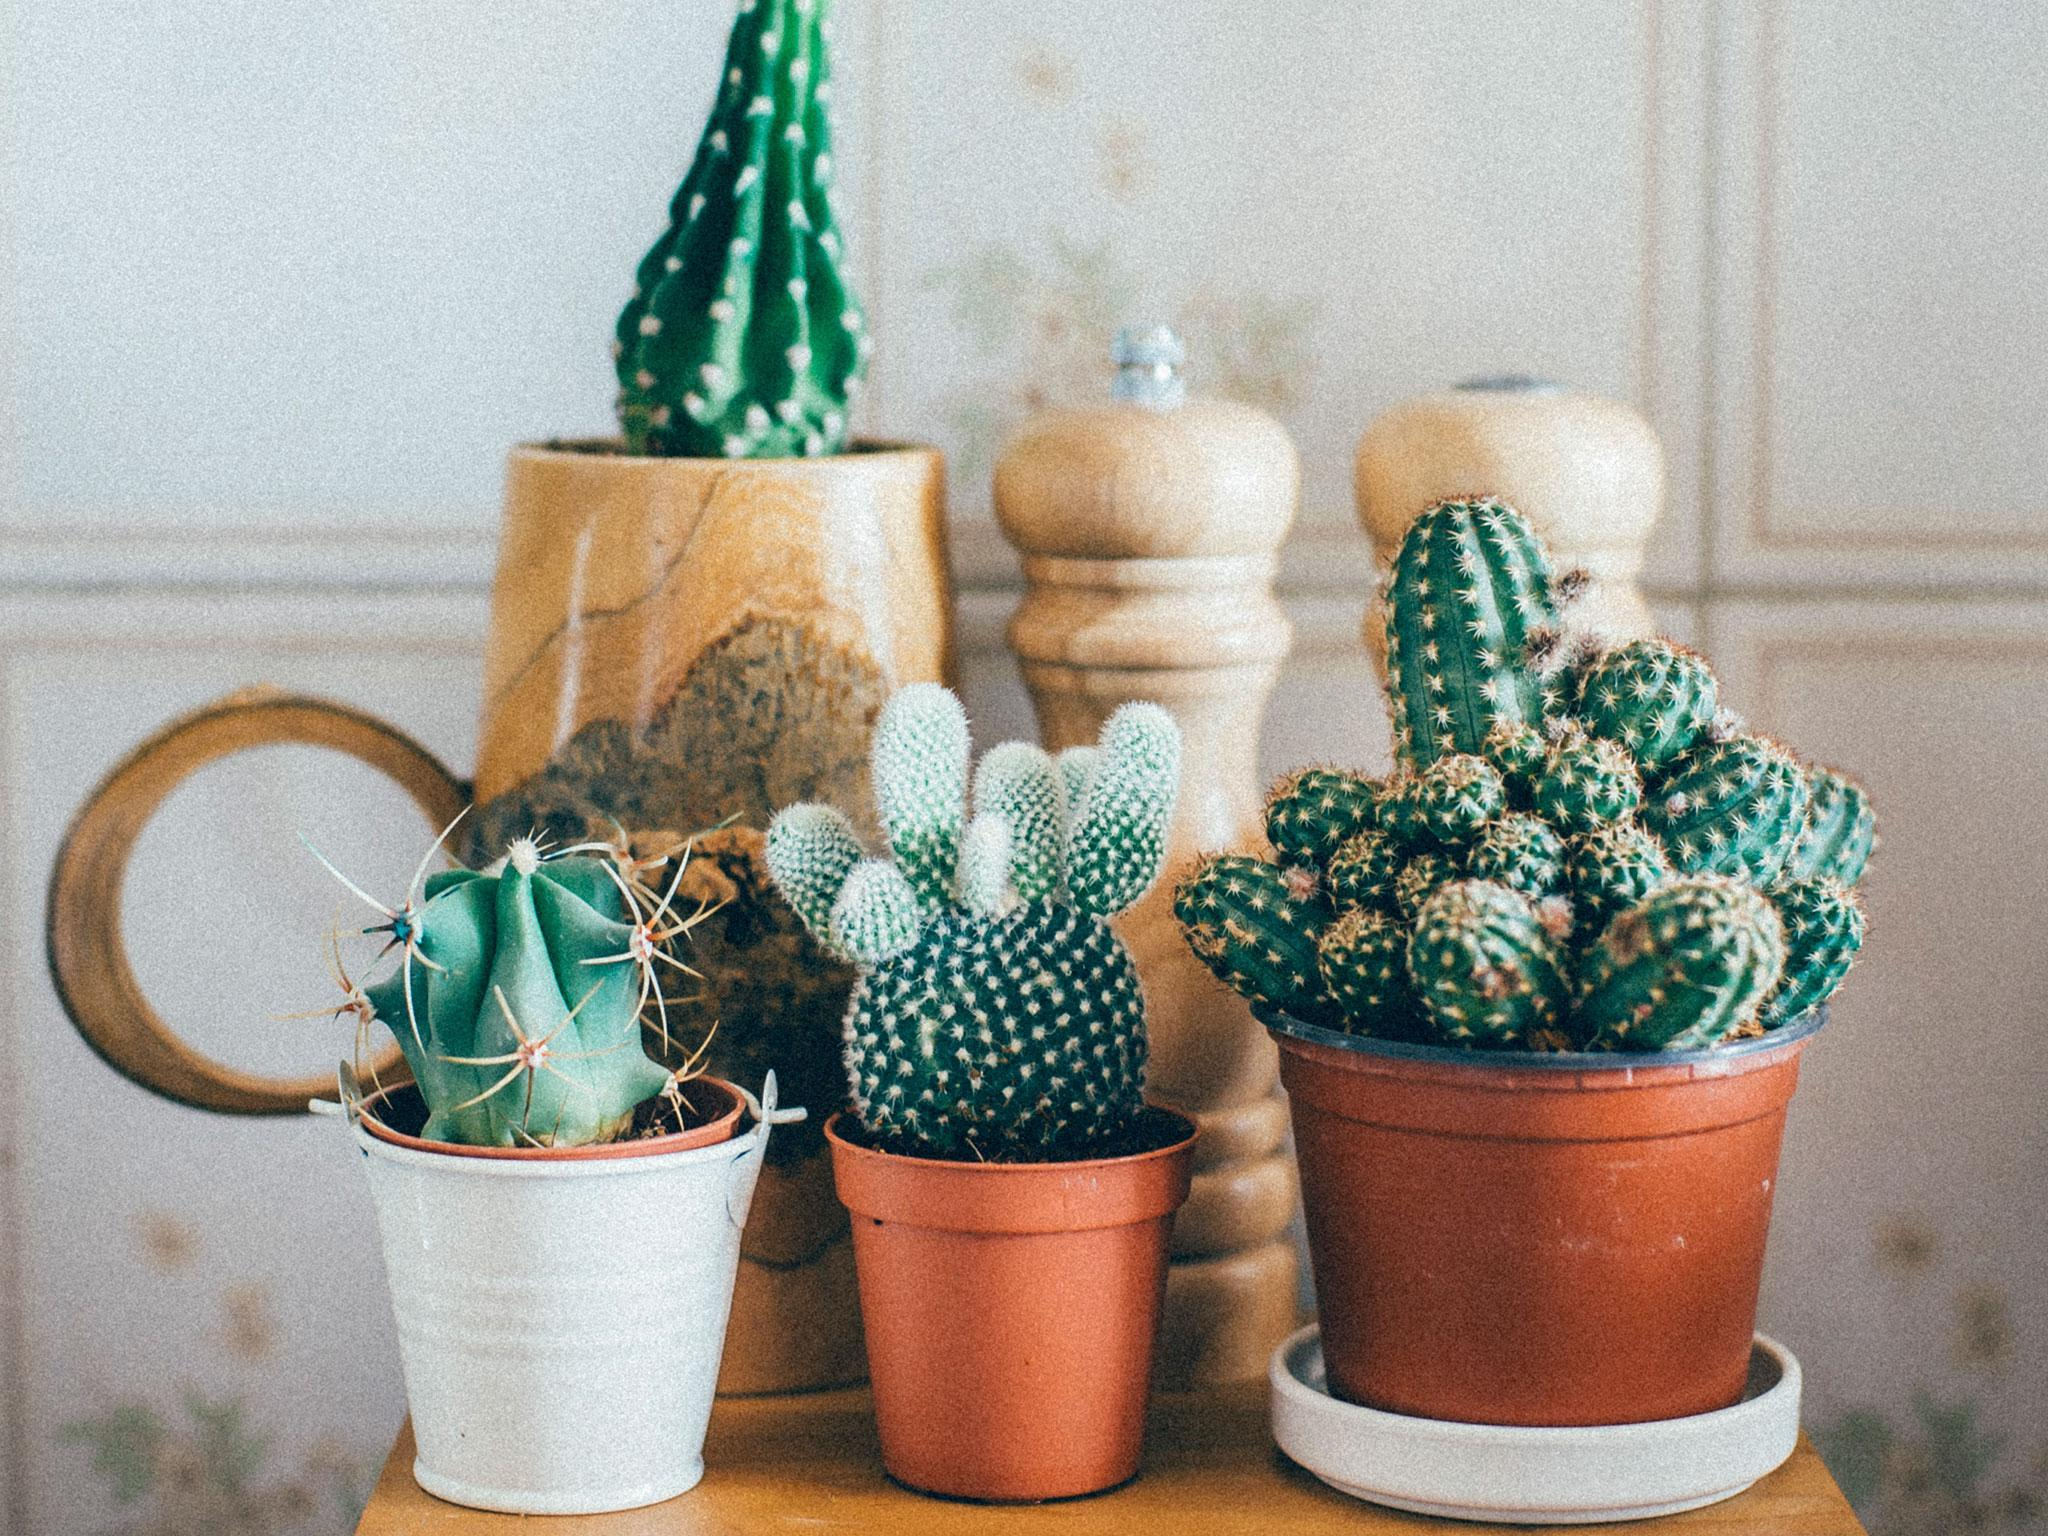 Unusual House Plants For Sale Millennials Are Obsessed With Houseplants Because They Can T